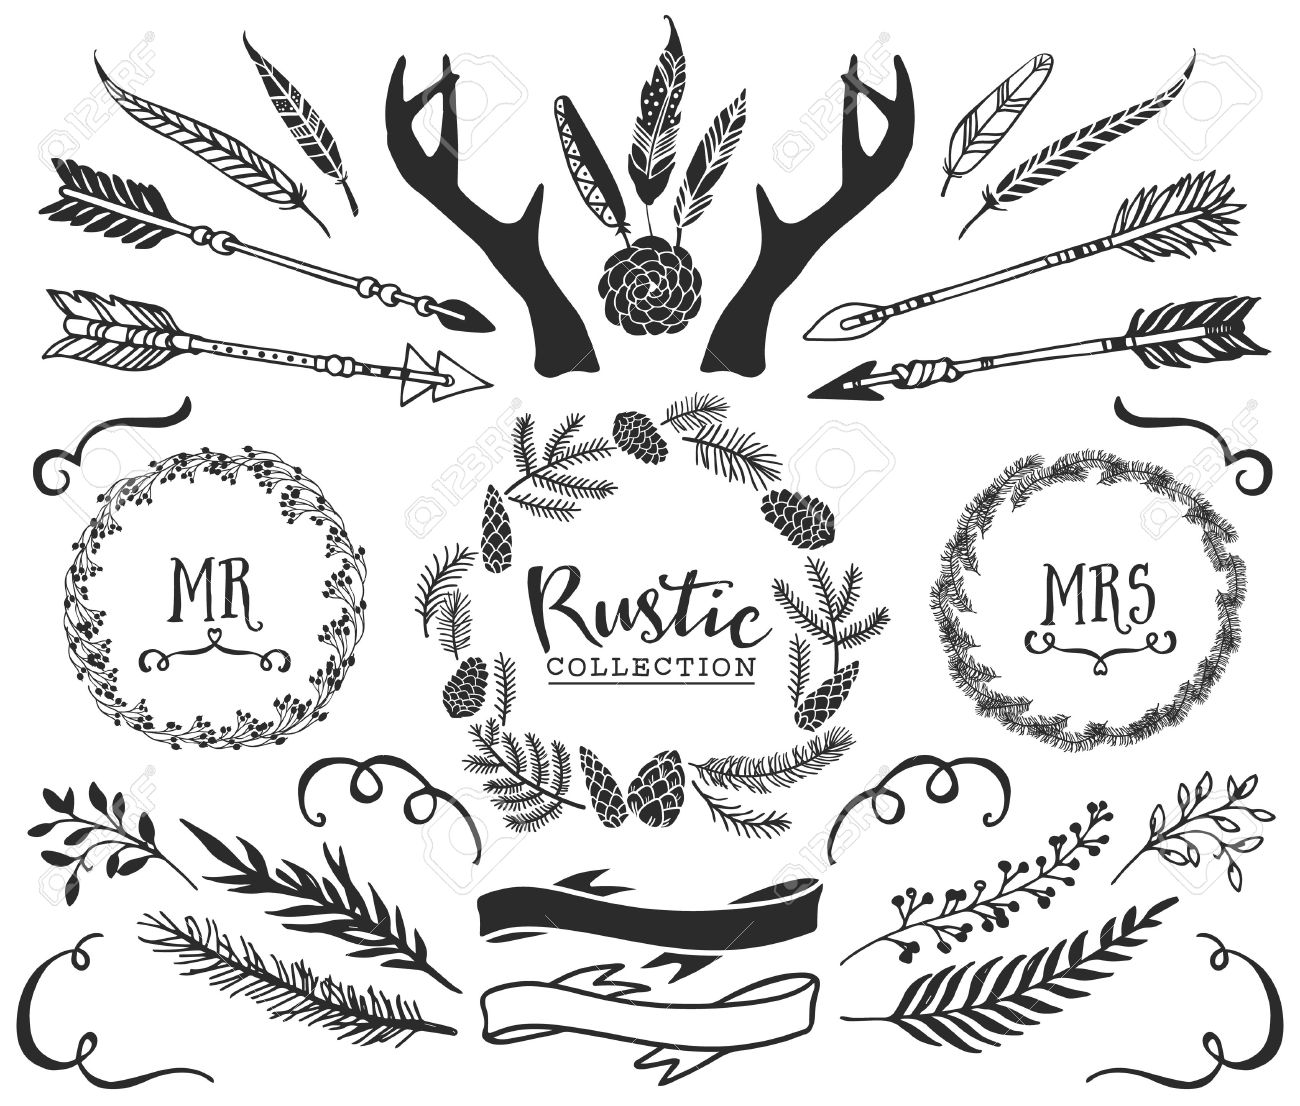 hand drawn antlers arrows feathers ribbons and wreaths with lettering rustic decorative